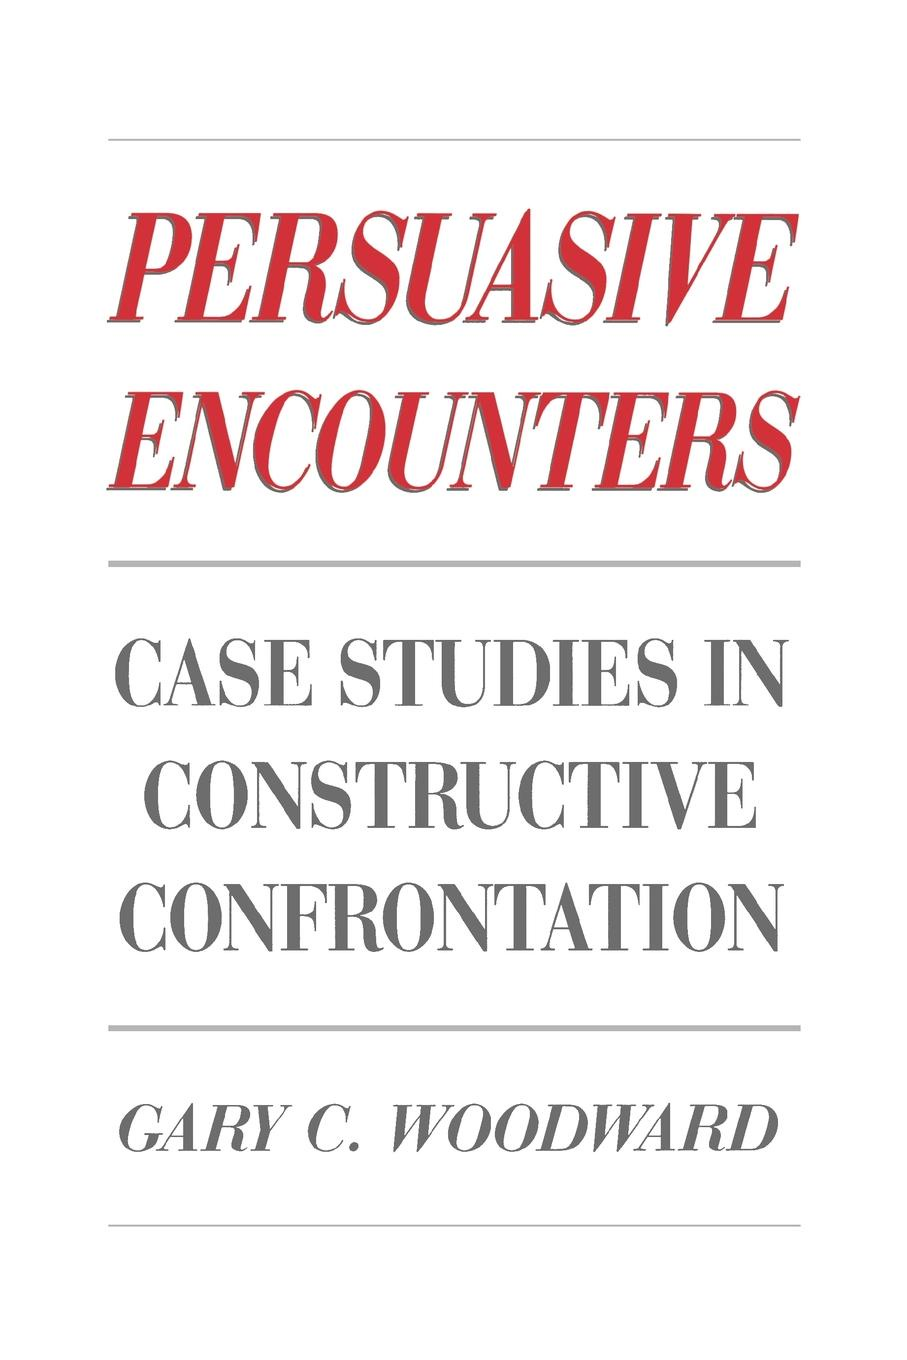 Gary C. Woodward Persuasive Encounters. Case Studies in Constructive Confrontation